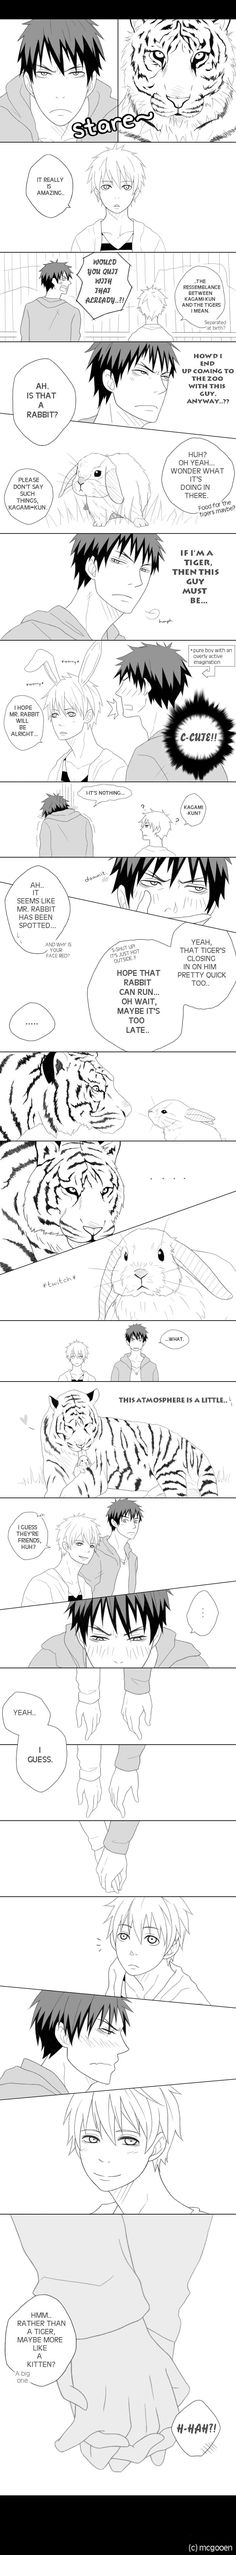 KnB - Tigers and Rabbits by Mcgooen.deviantart.com on @deviantART - Kagami x Kuroko